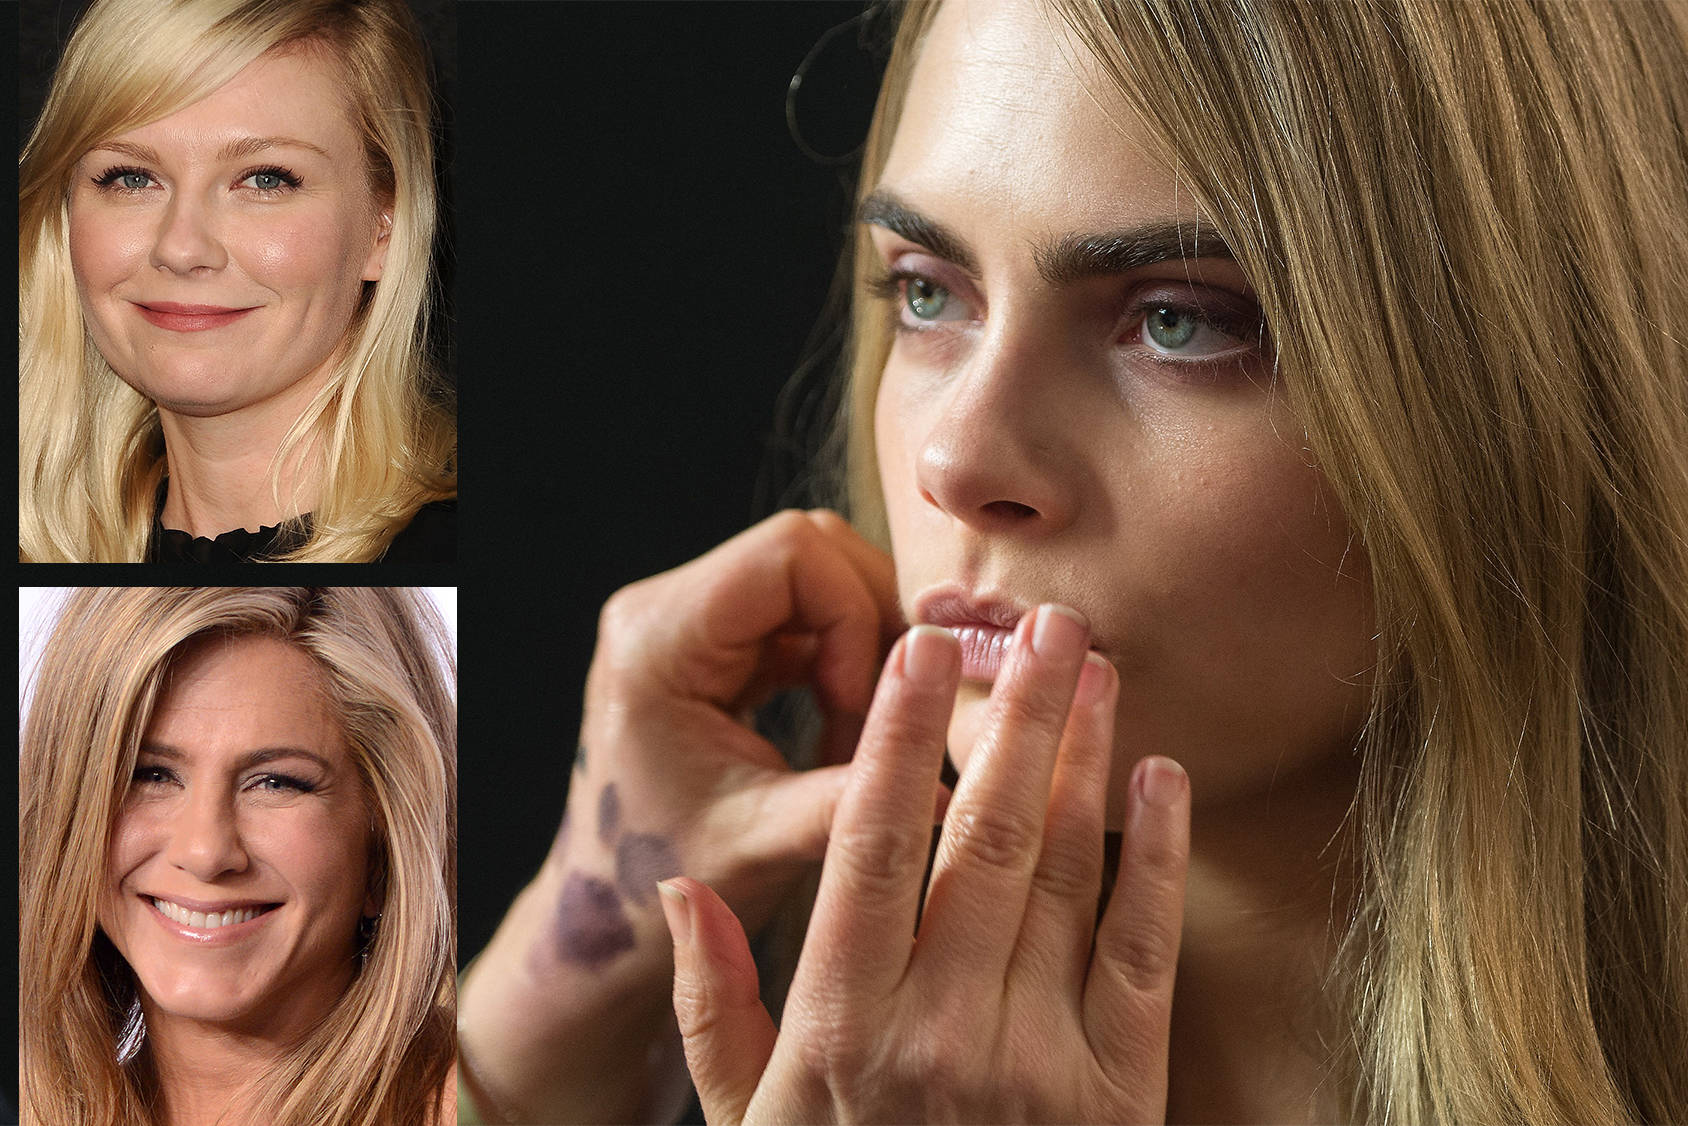 Kirsten Dunst, Jennifer Aniston and Cara Delevingne know the secrets to fuller lips, Getty Images.